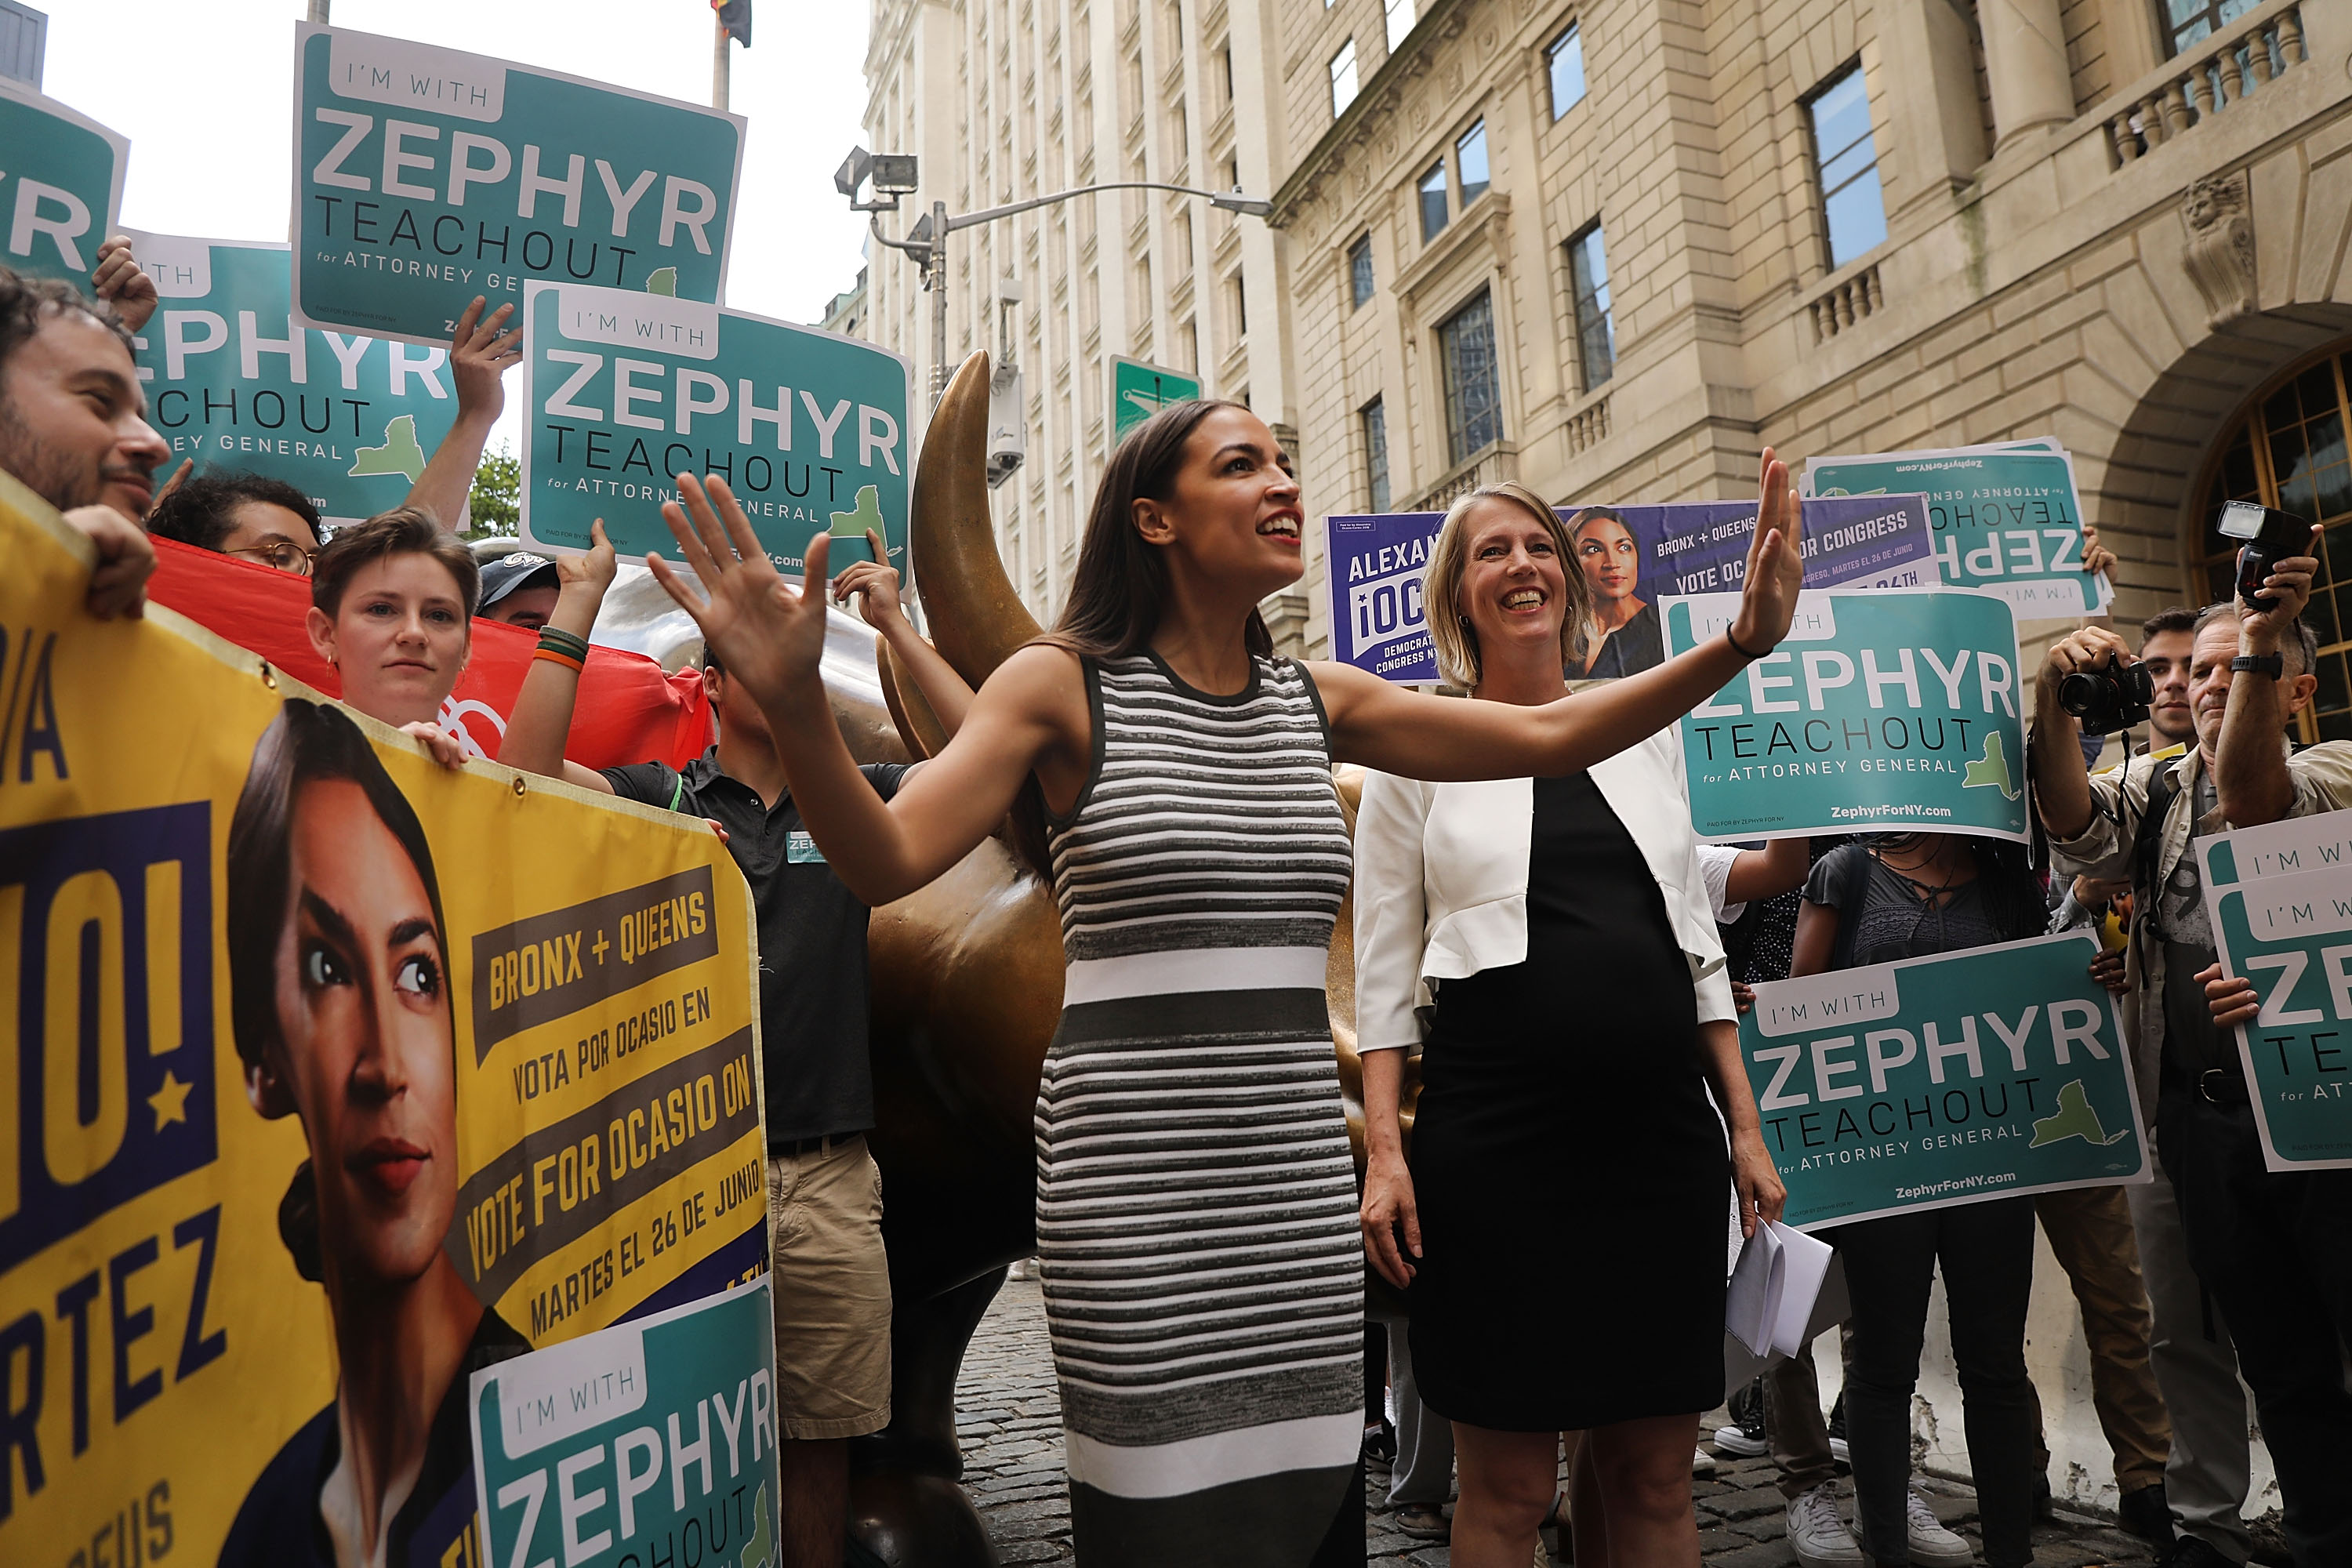 Congressional nominee Alexandria Ocasio-Cortez (L) stands with Zephyr Teachout after endorsing her for New York City Public Advocate on July 12, 2018 in New York City. (Getty Images)